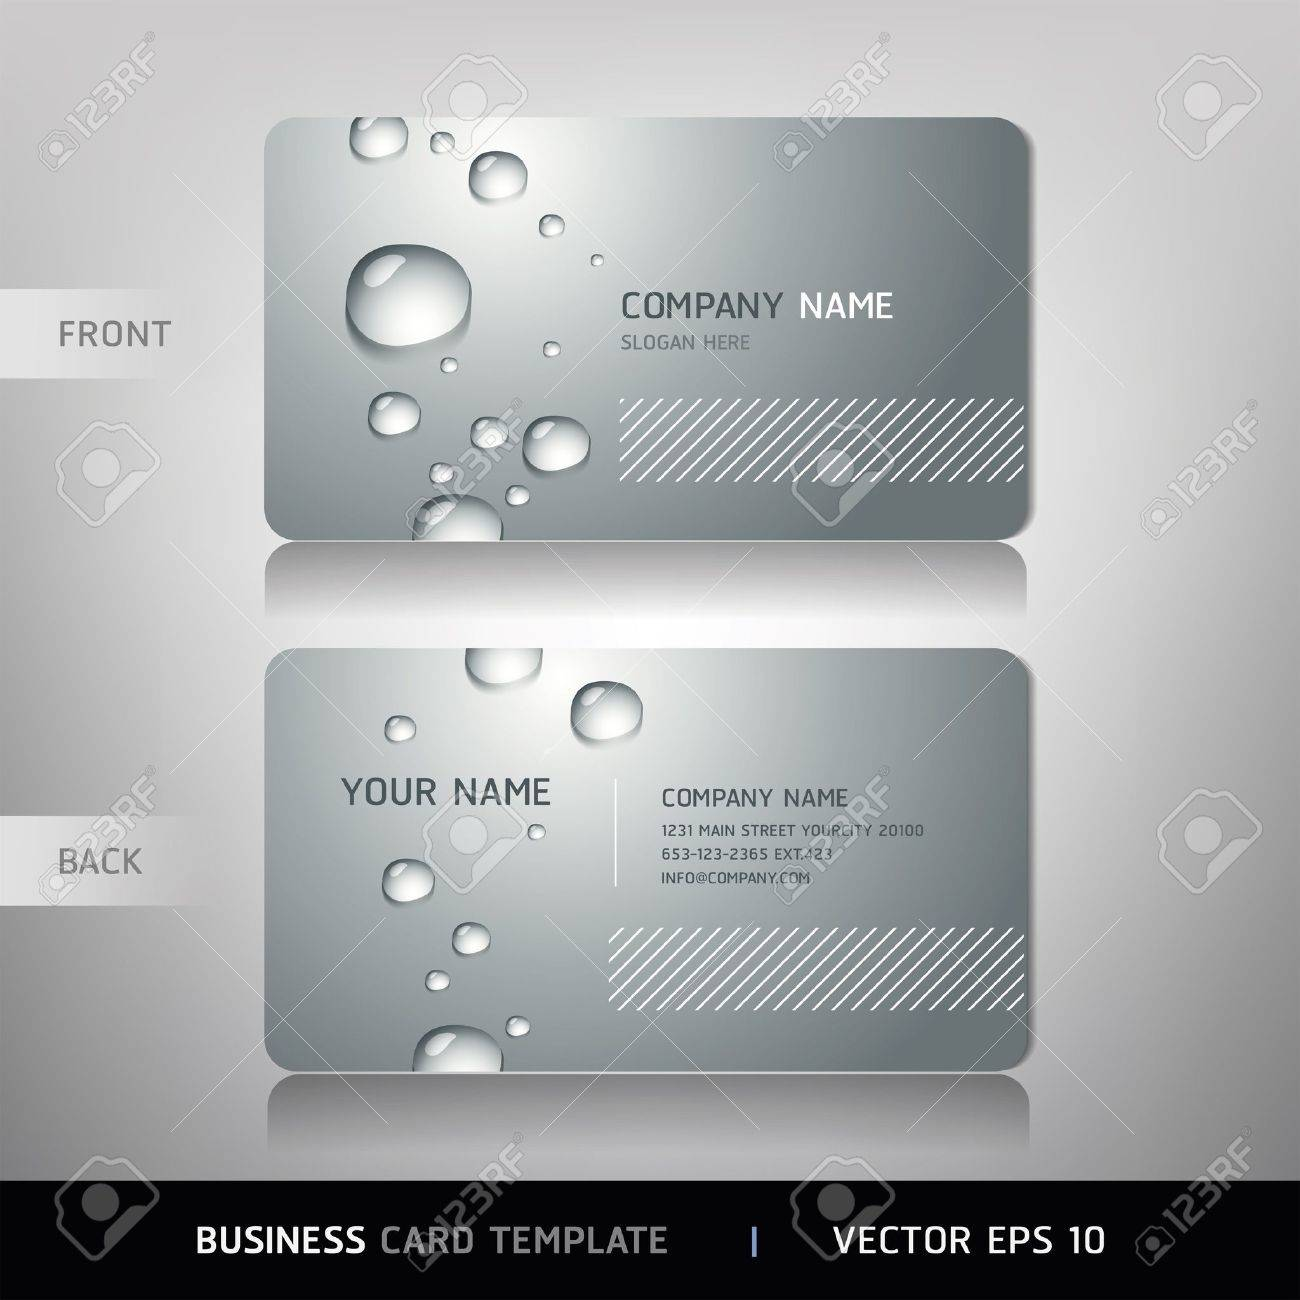 Business Card With Water Drop Vector Illustration Royalty Free ...